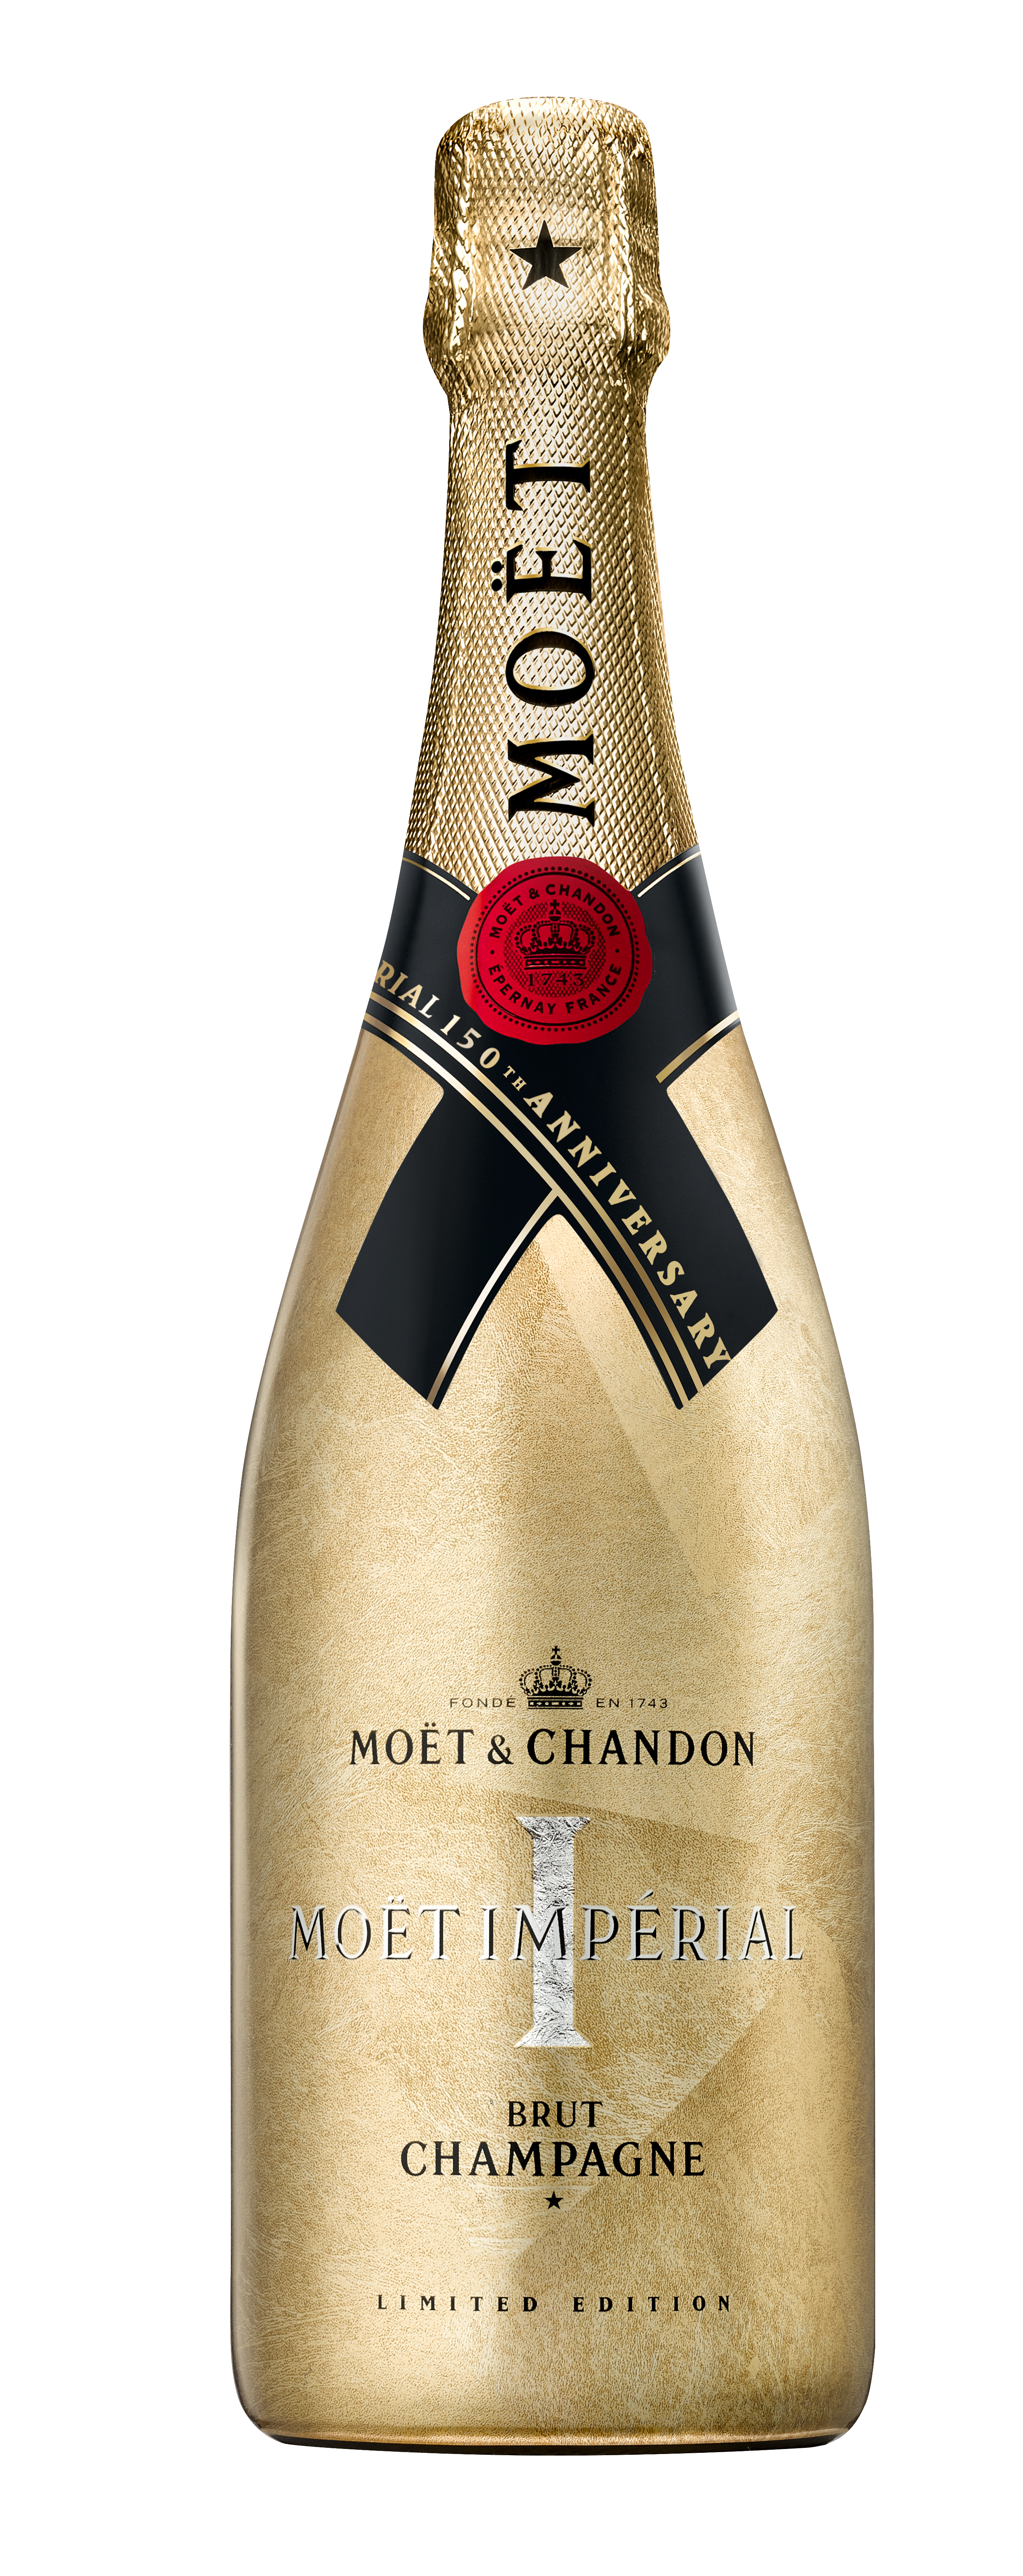 Moテォt-Chandon-Bouteille-75cl-150Ans-EOY_veryhigh.width-9500x-prop